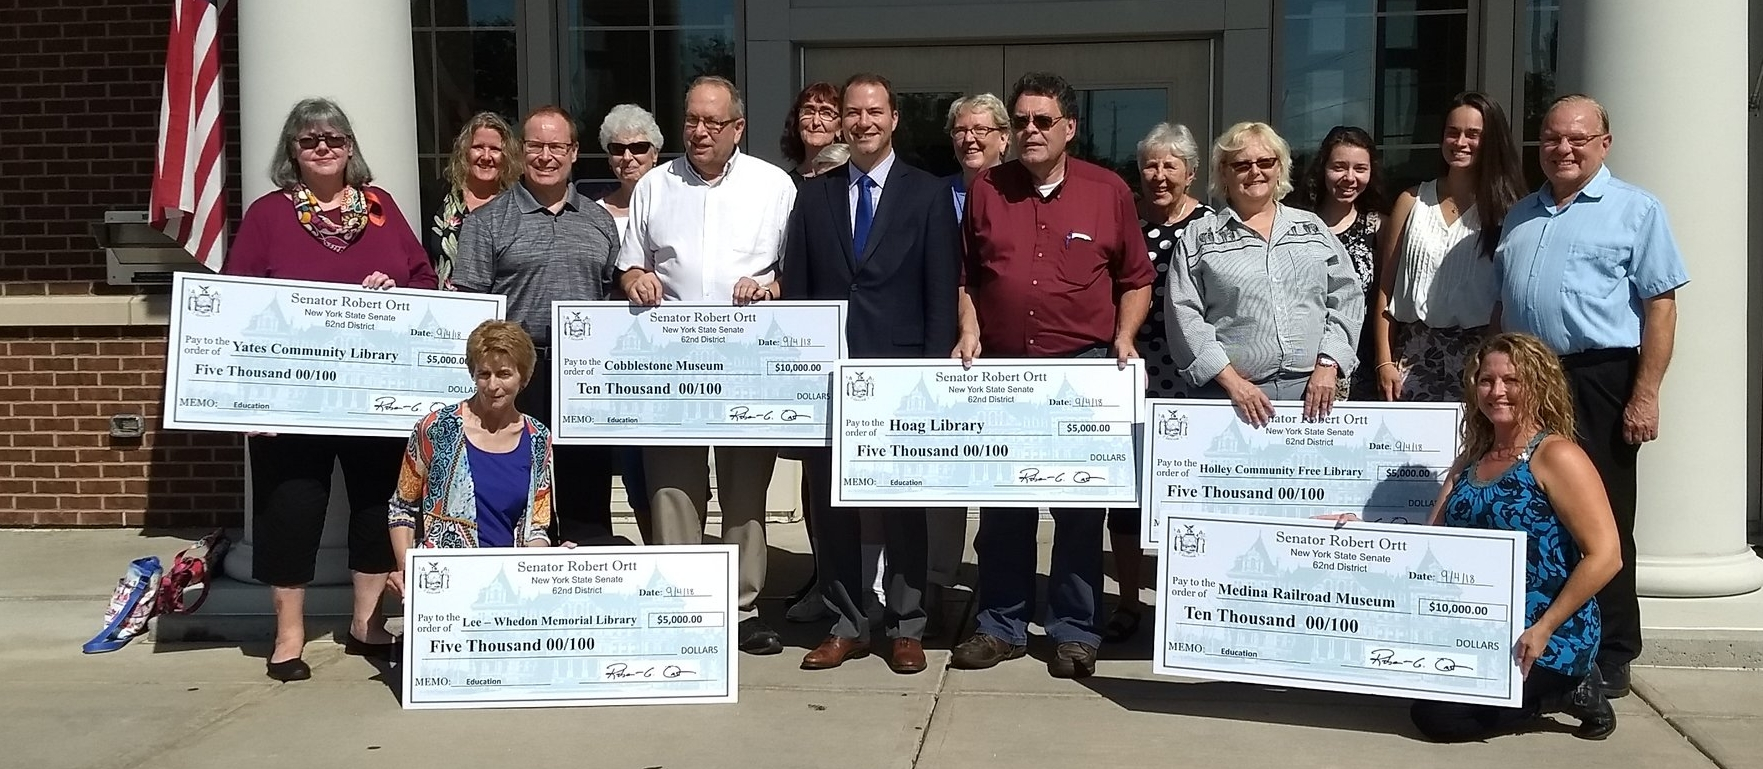 NY Senator Robert Ortt presented several Orleans county organizations (including the Community Free Library) with ceremonial grant checks at the Hoag Library on September 4, 2018